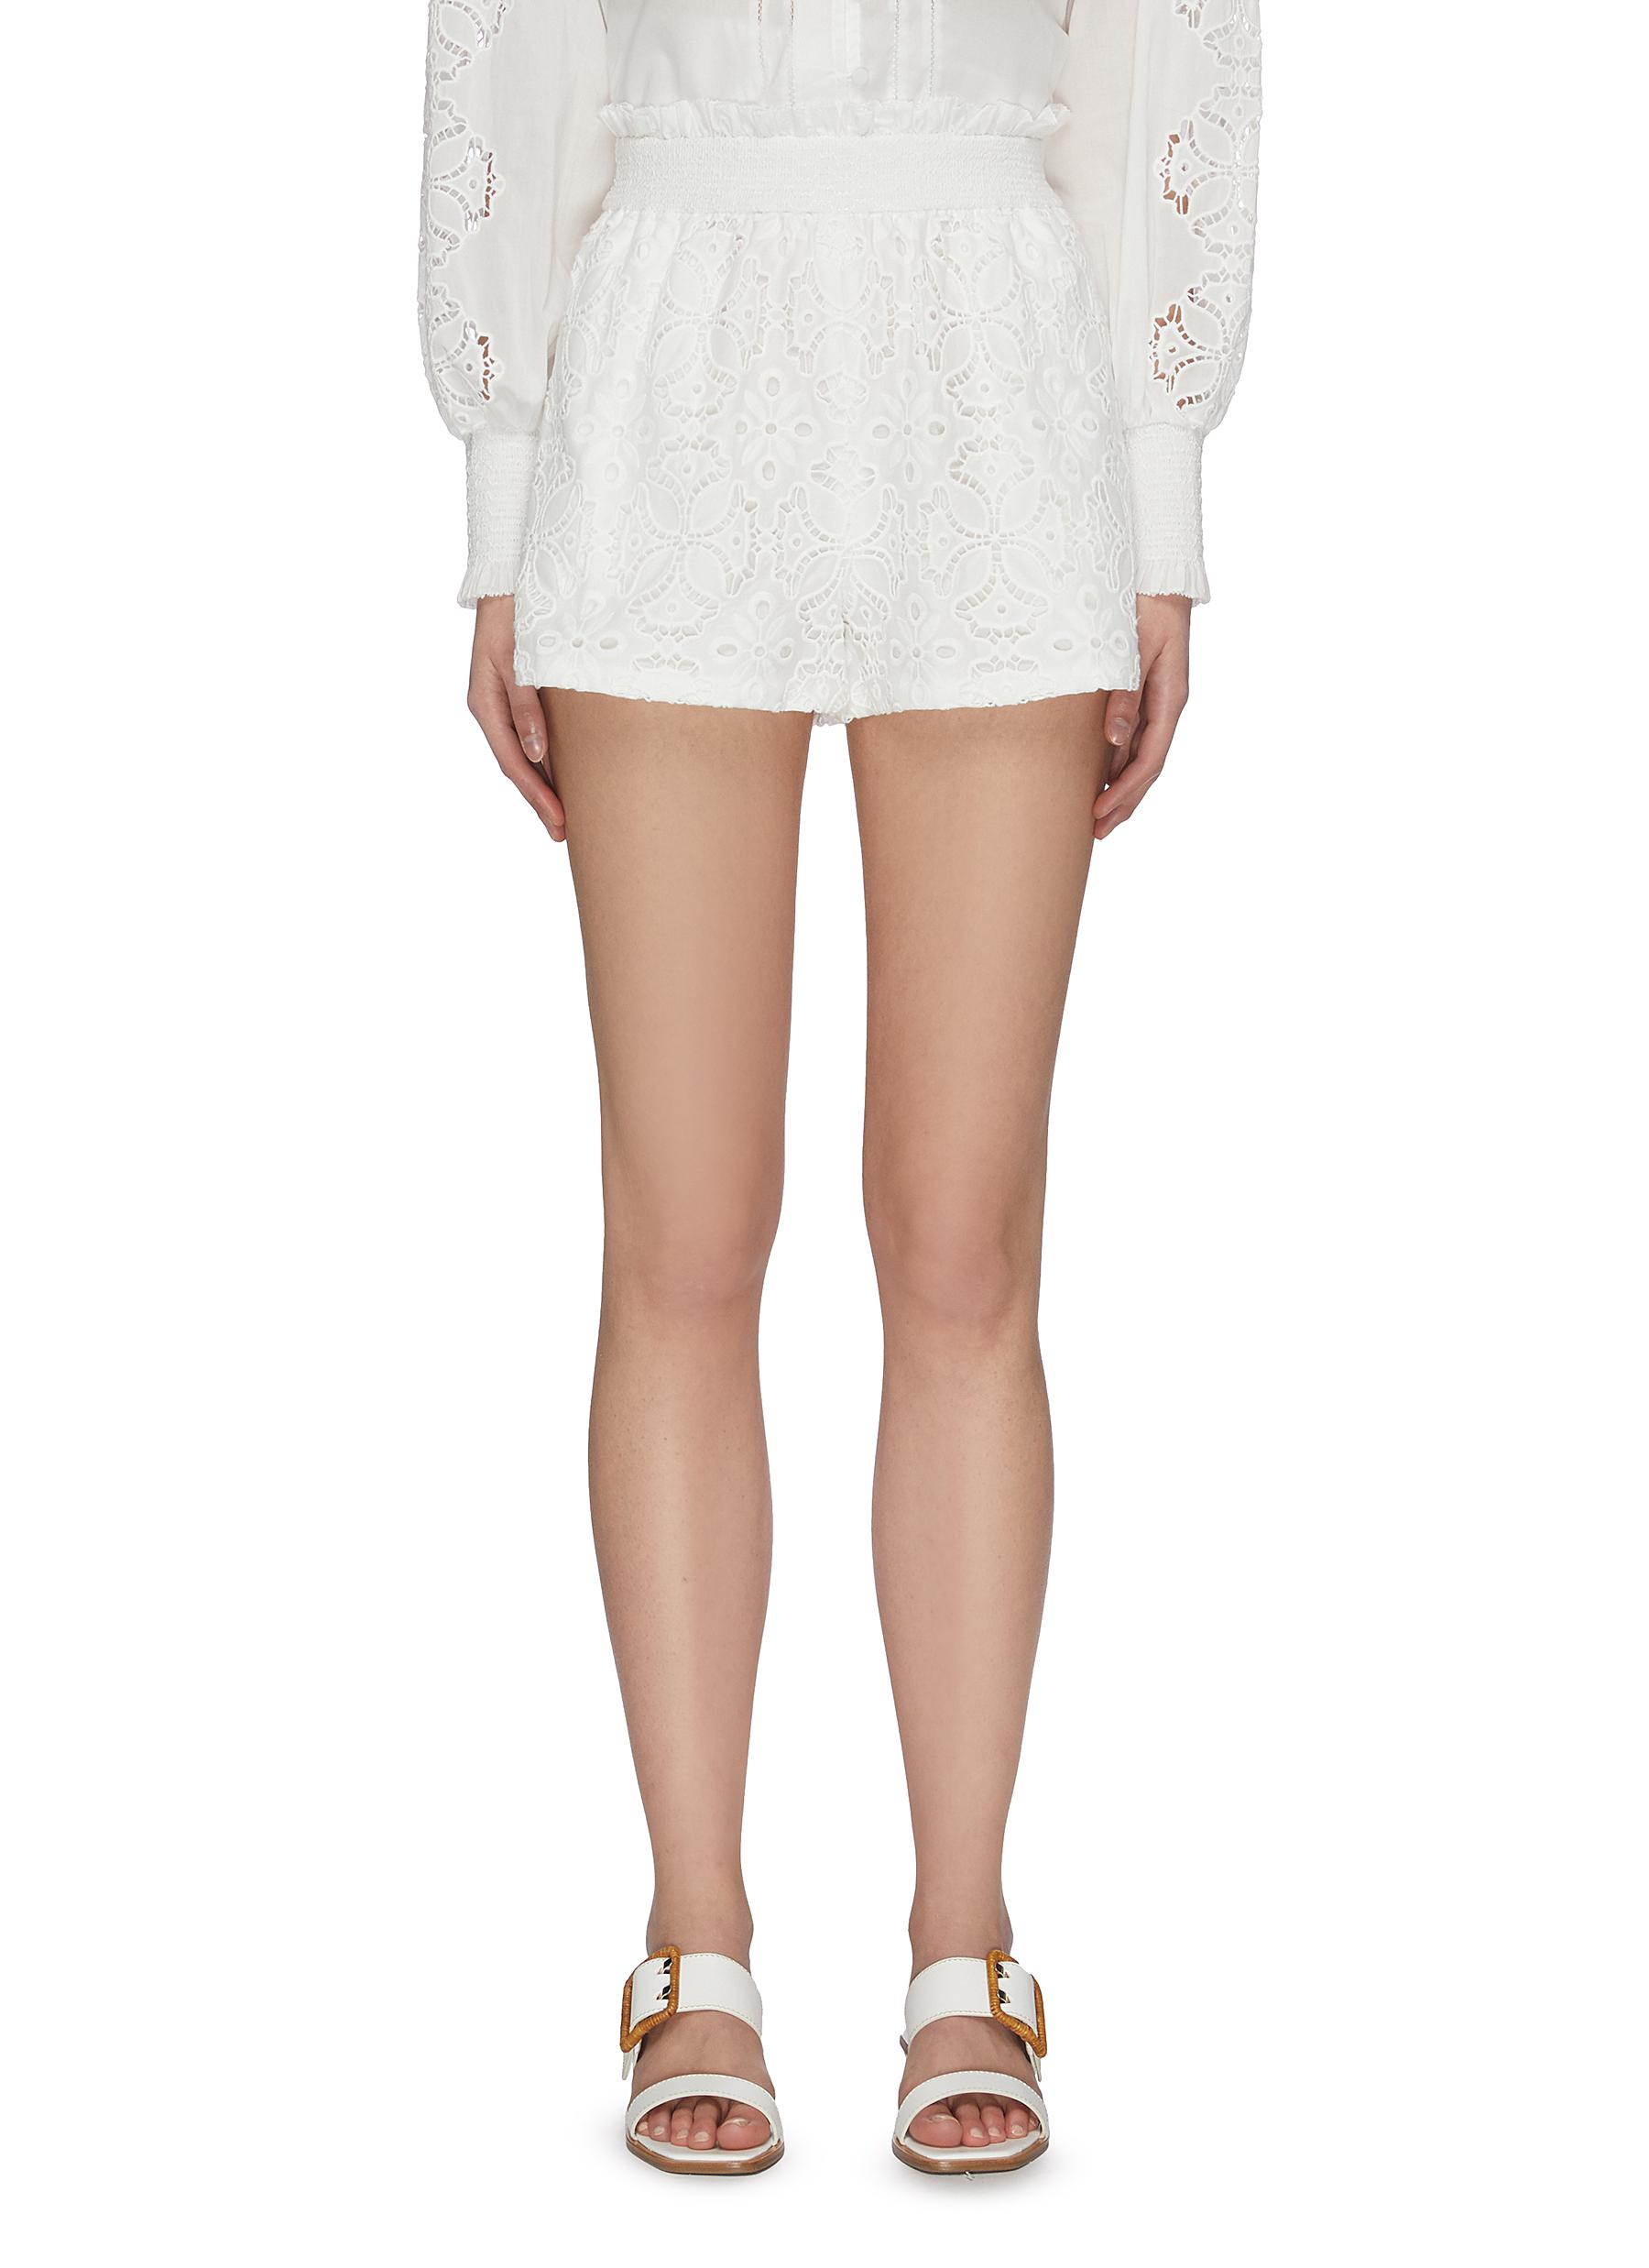 Buy Jonathan Simkhai Pants & Shorts 'Alexandra' floral smocked shorts